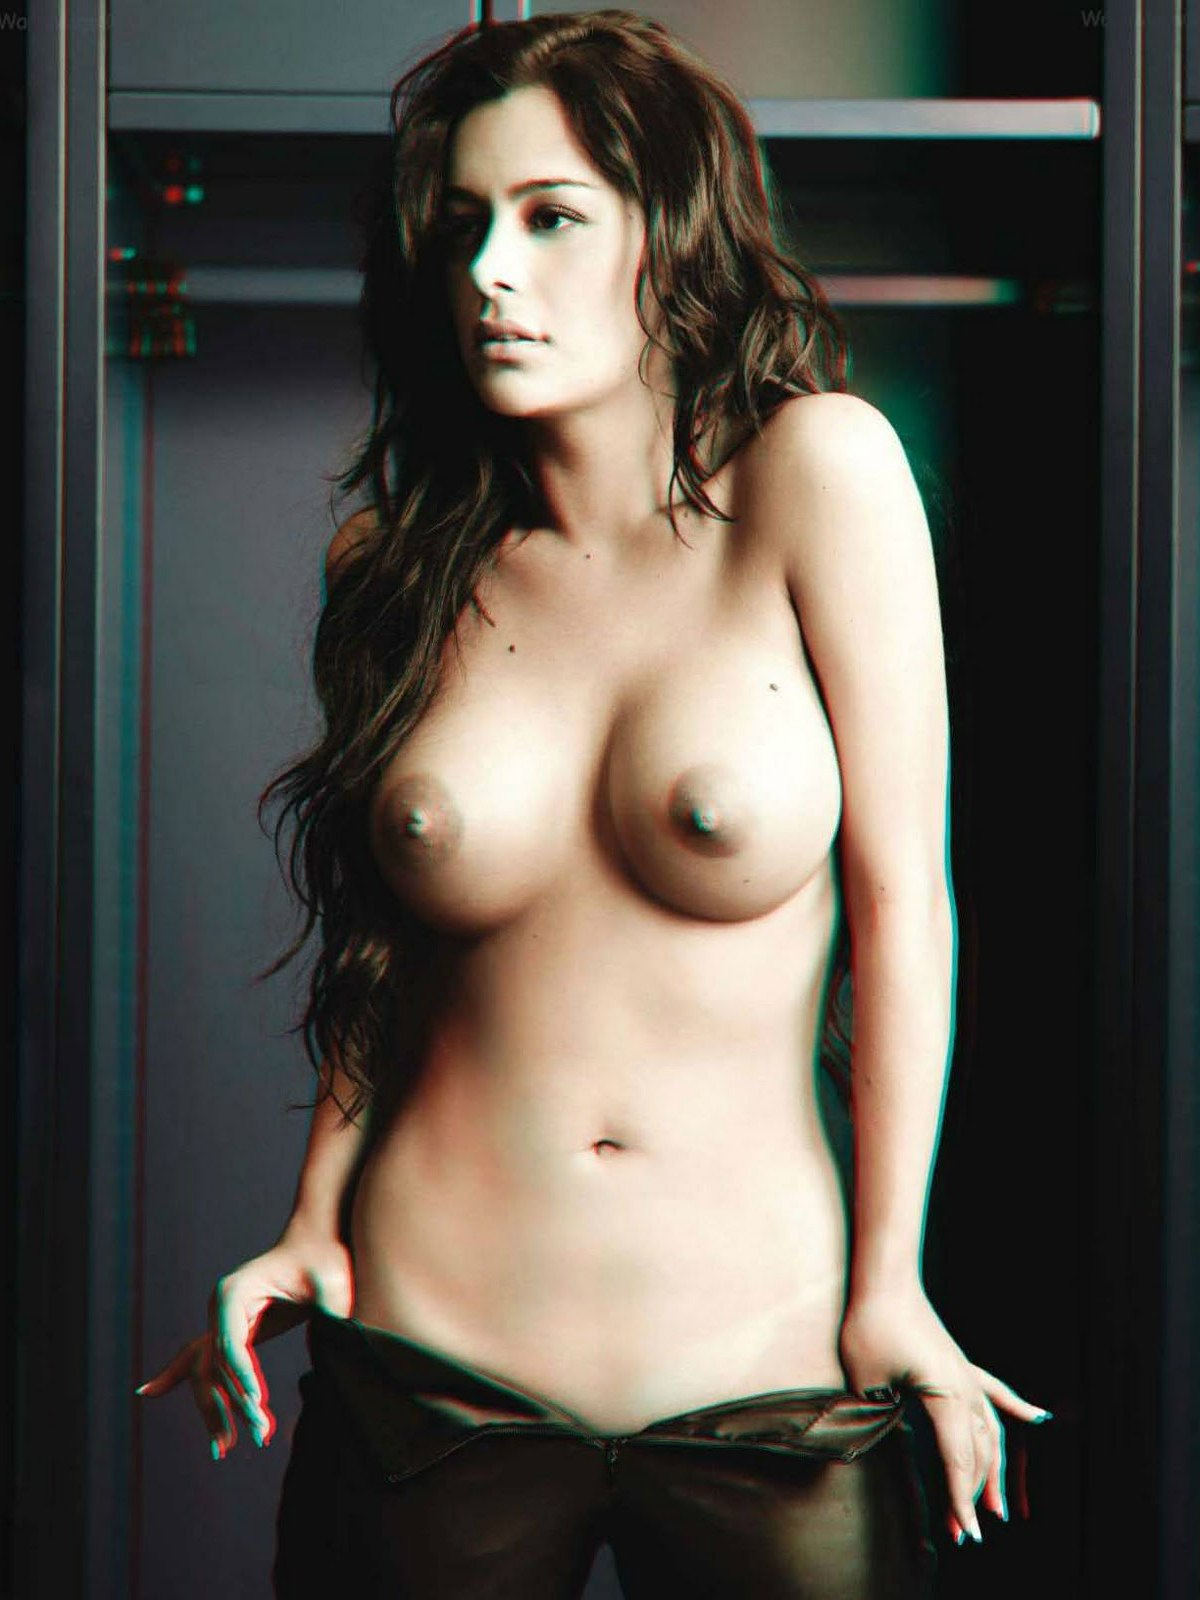 Playboy nude 3d photos sexual films